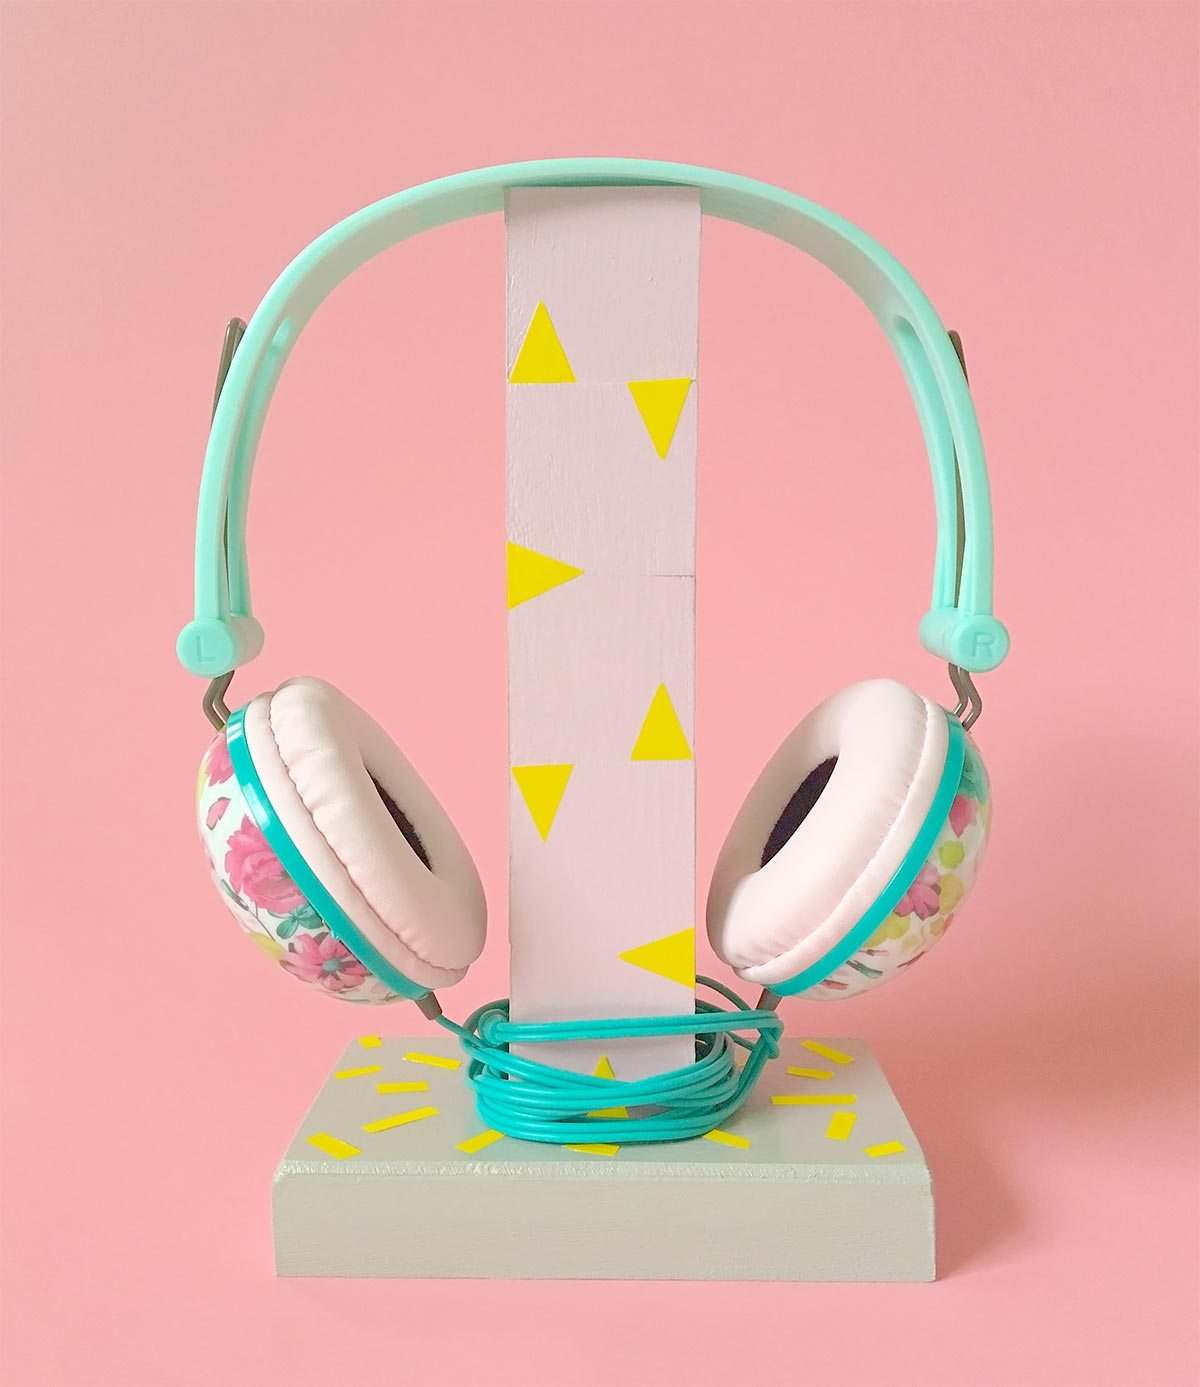 The coolest DIY headphones stand tutorial